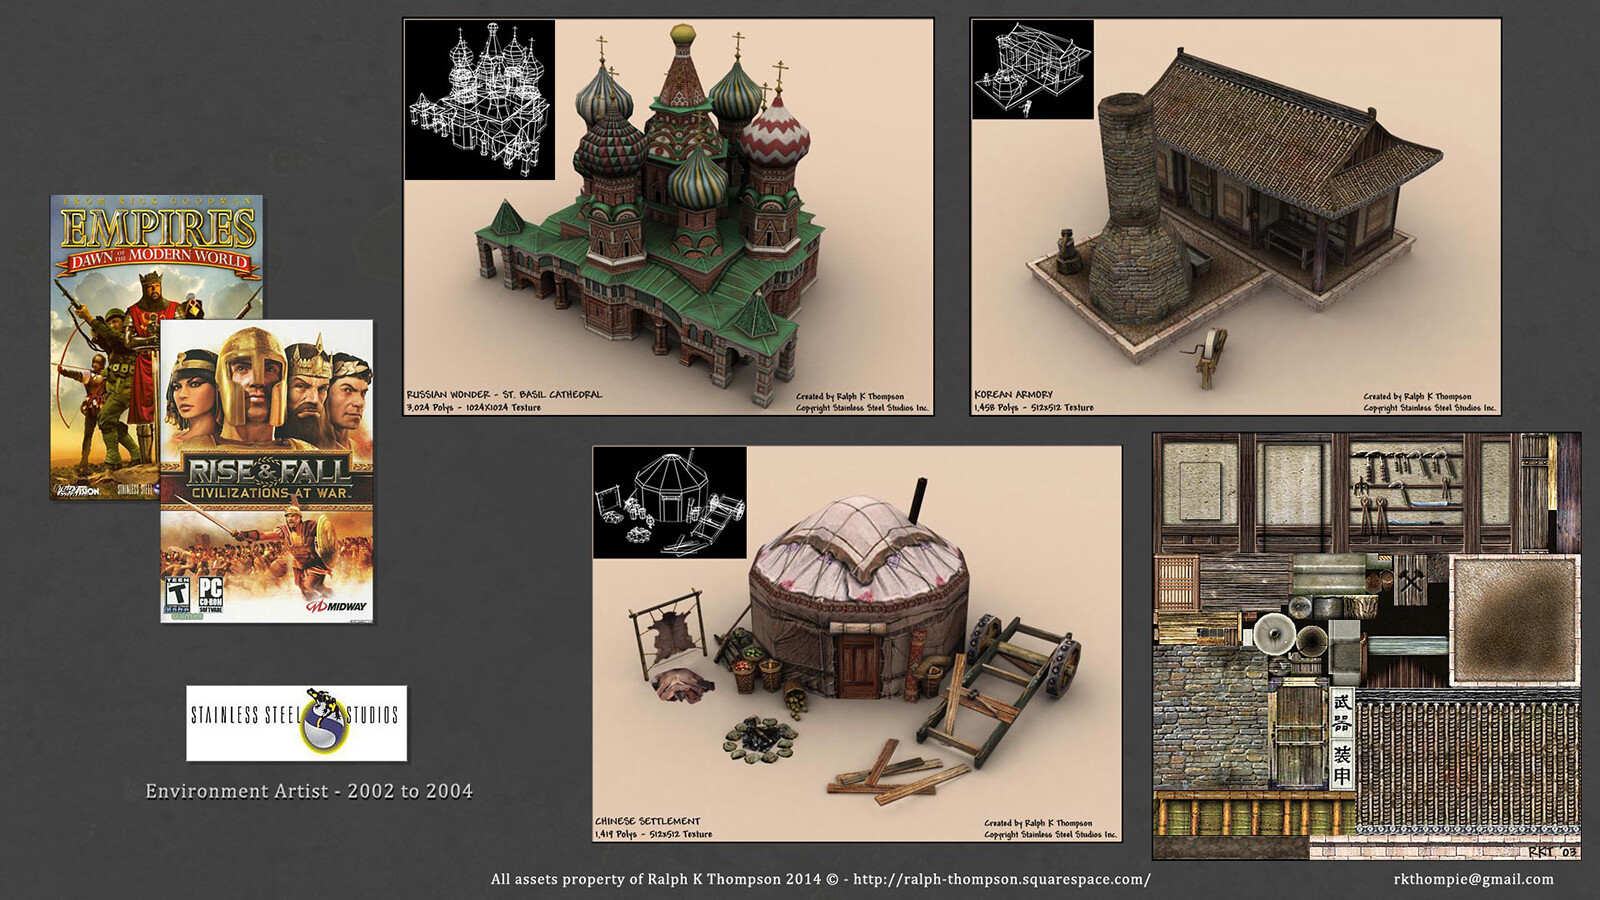 Various assets from titles I worked on early in my career while at Stainless Steel Studios.